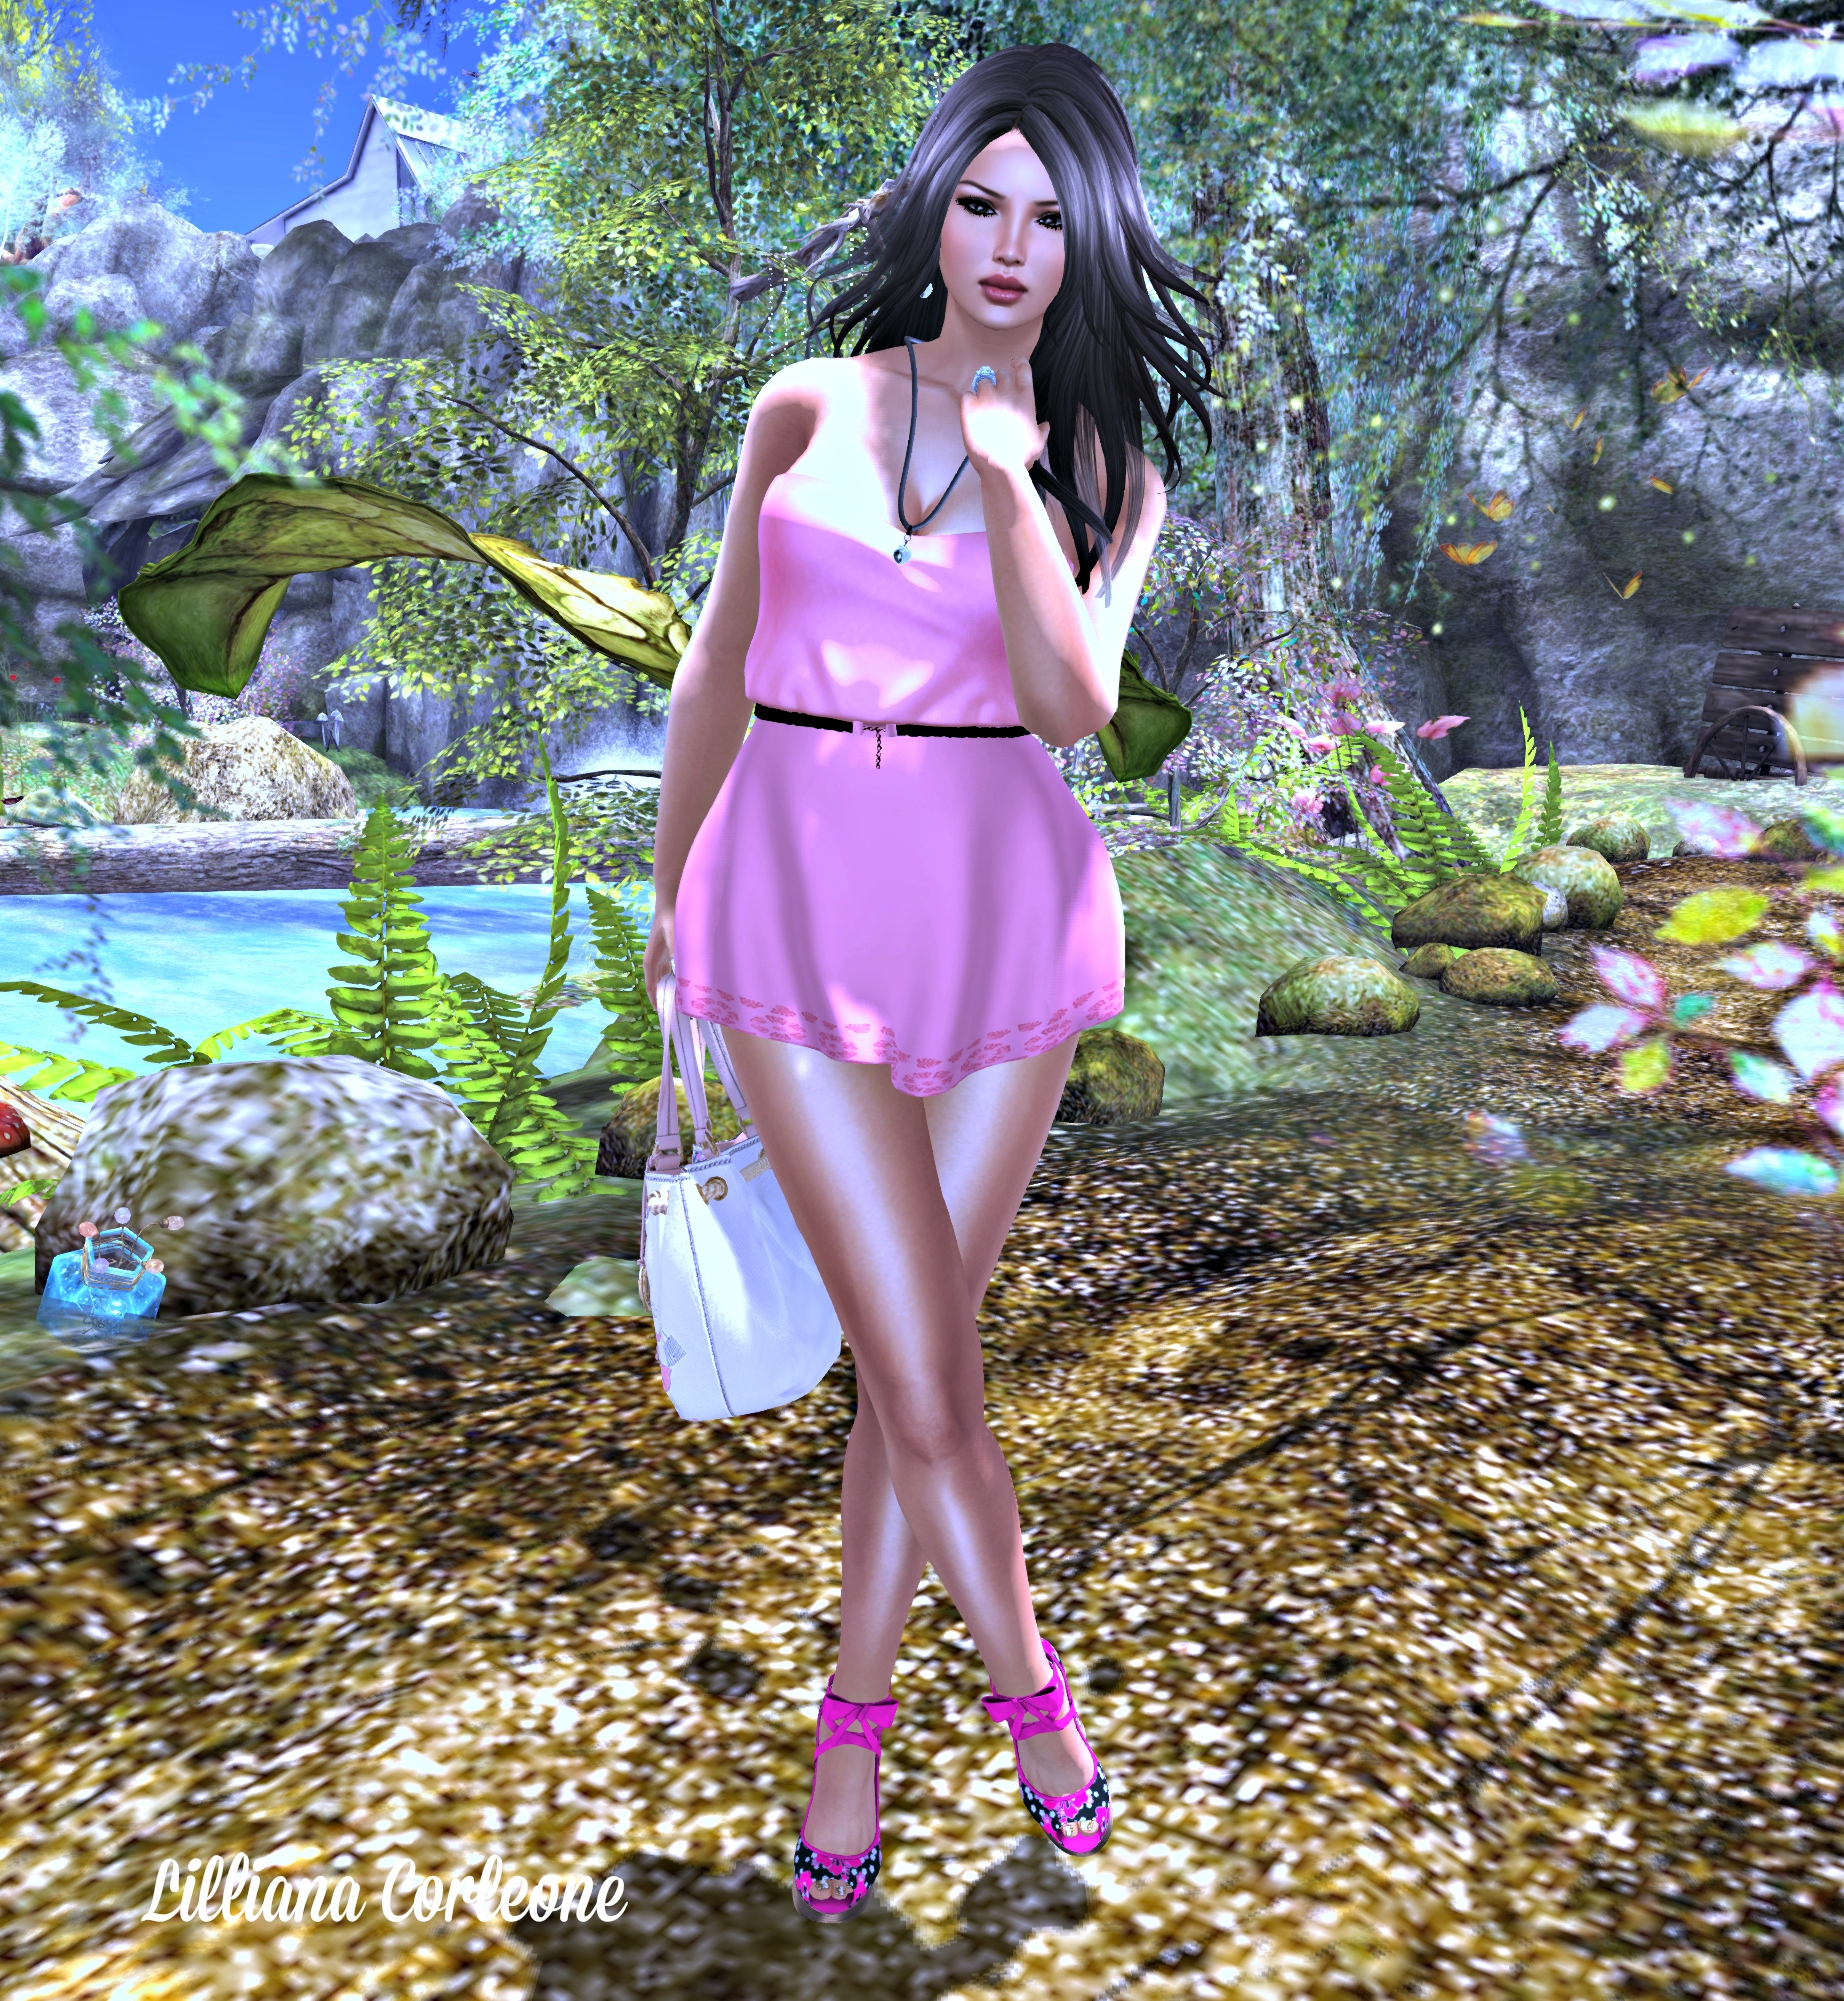 Sunday, July 26th Post, Pose #3_001_cropped